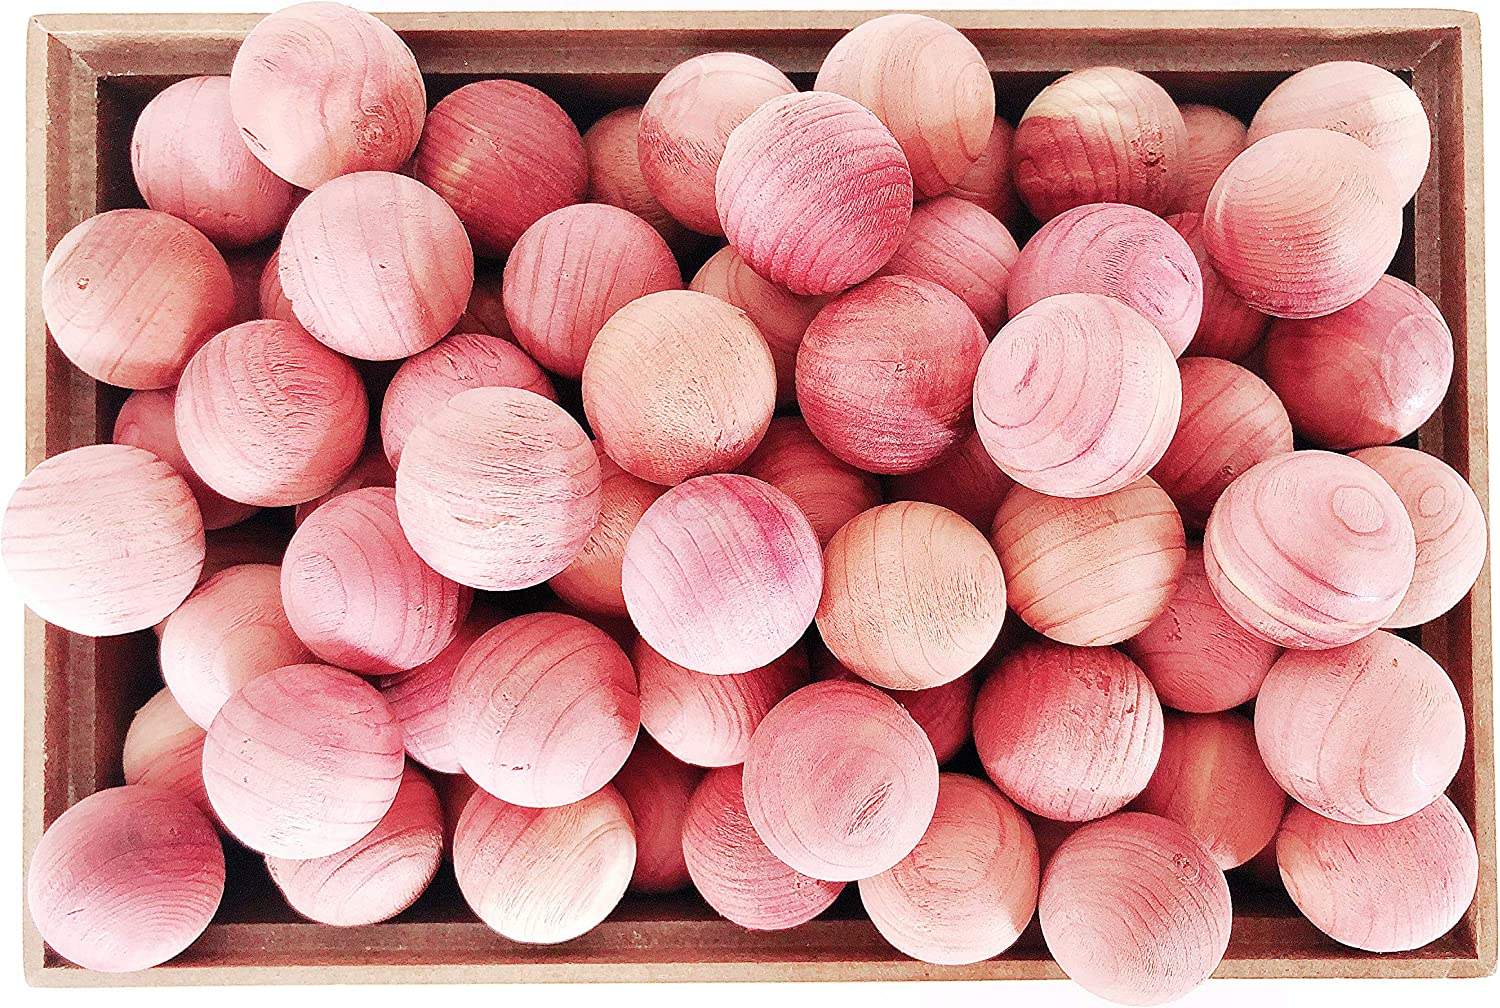 Cedar Balls for Clothes Storage and Drawers Bloc Overseas parallel import regular item Pcs Max 83% OFF 120 -